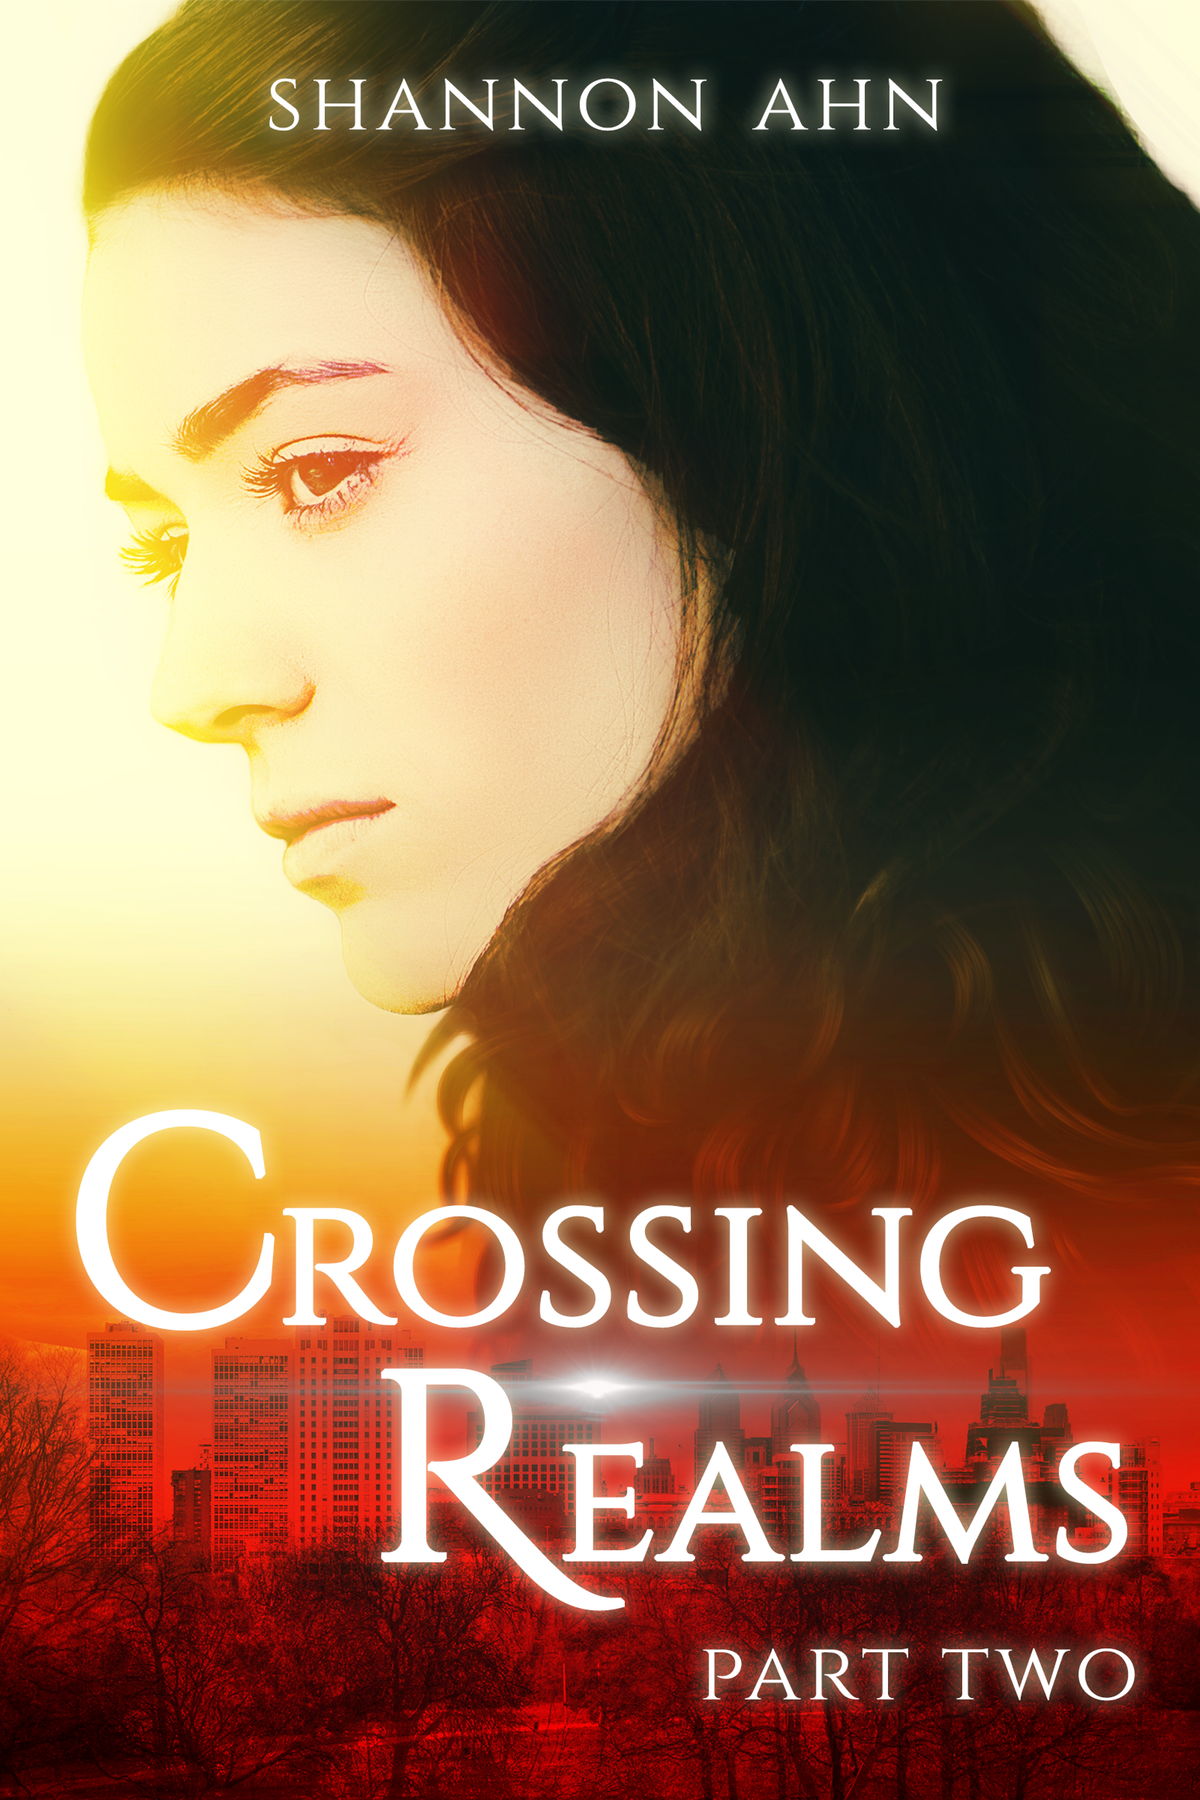 Crossing Realms Part Two